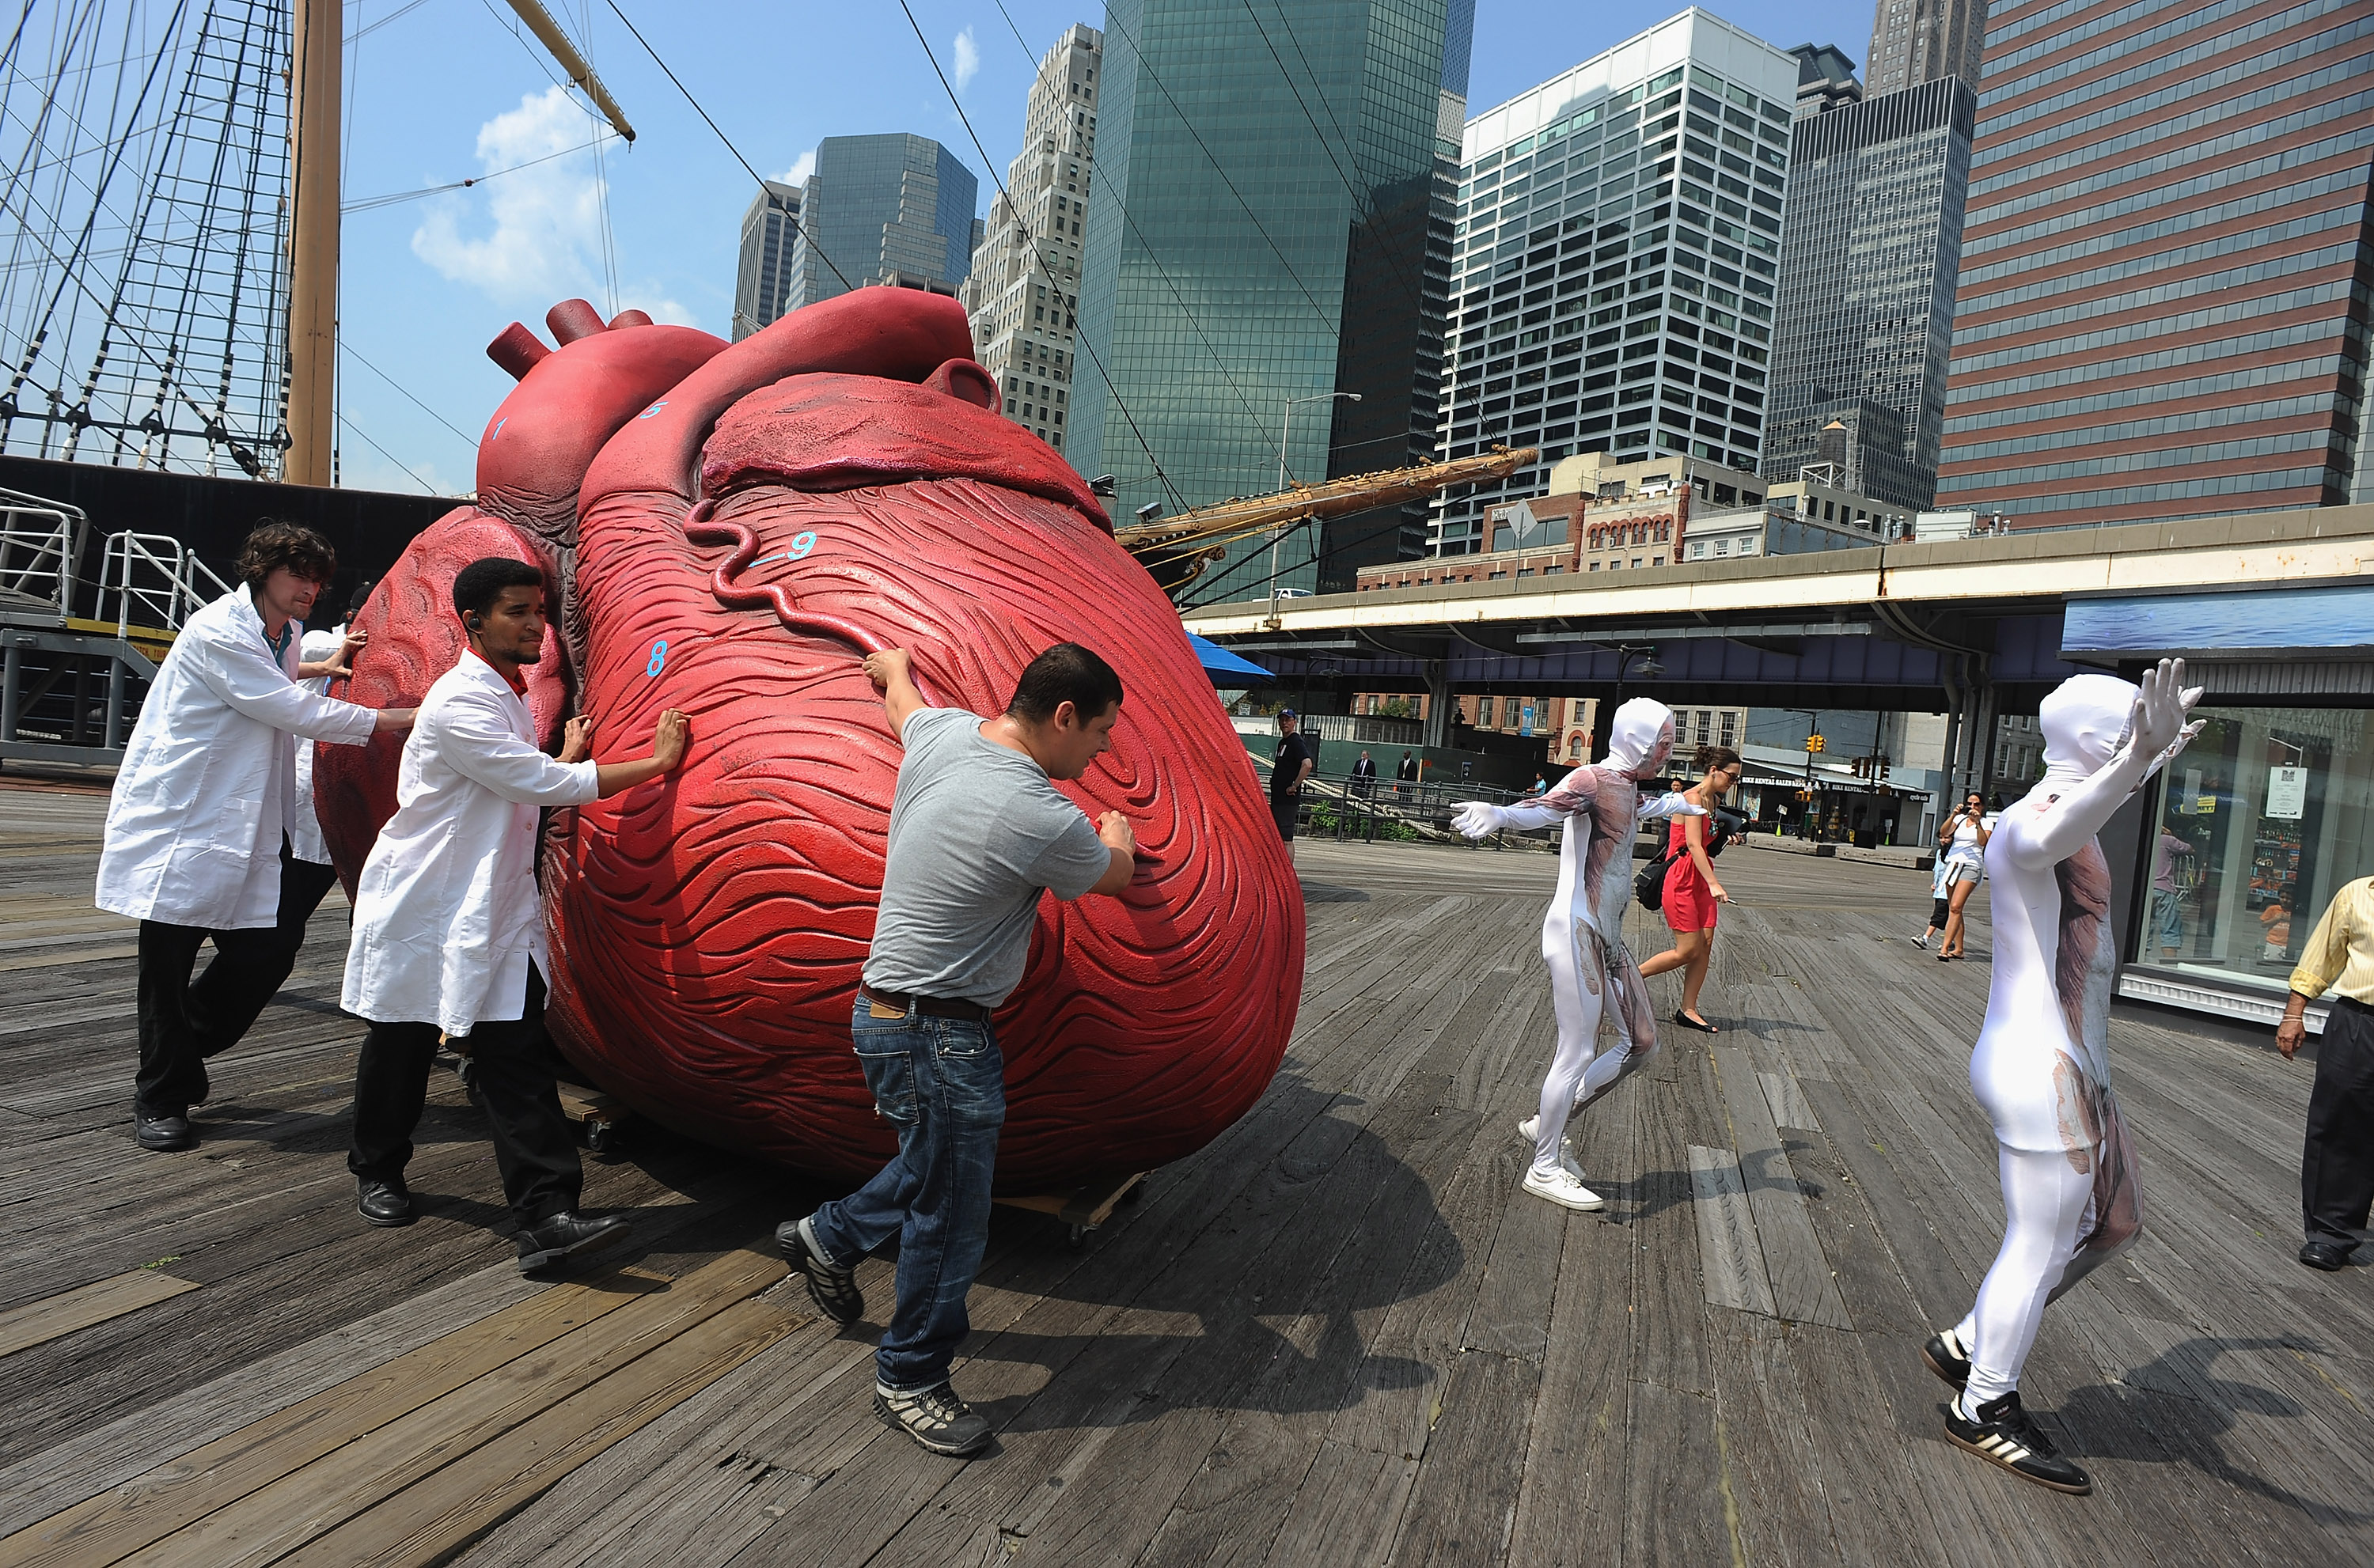 BODIES...The Exhibition Unveils Huge Heart at South Street Seaport